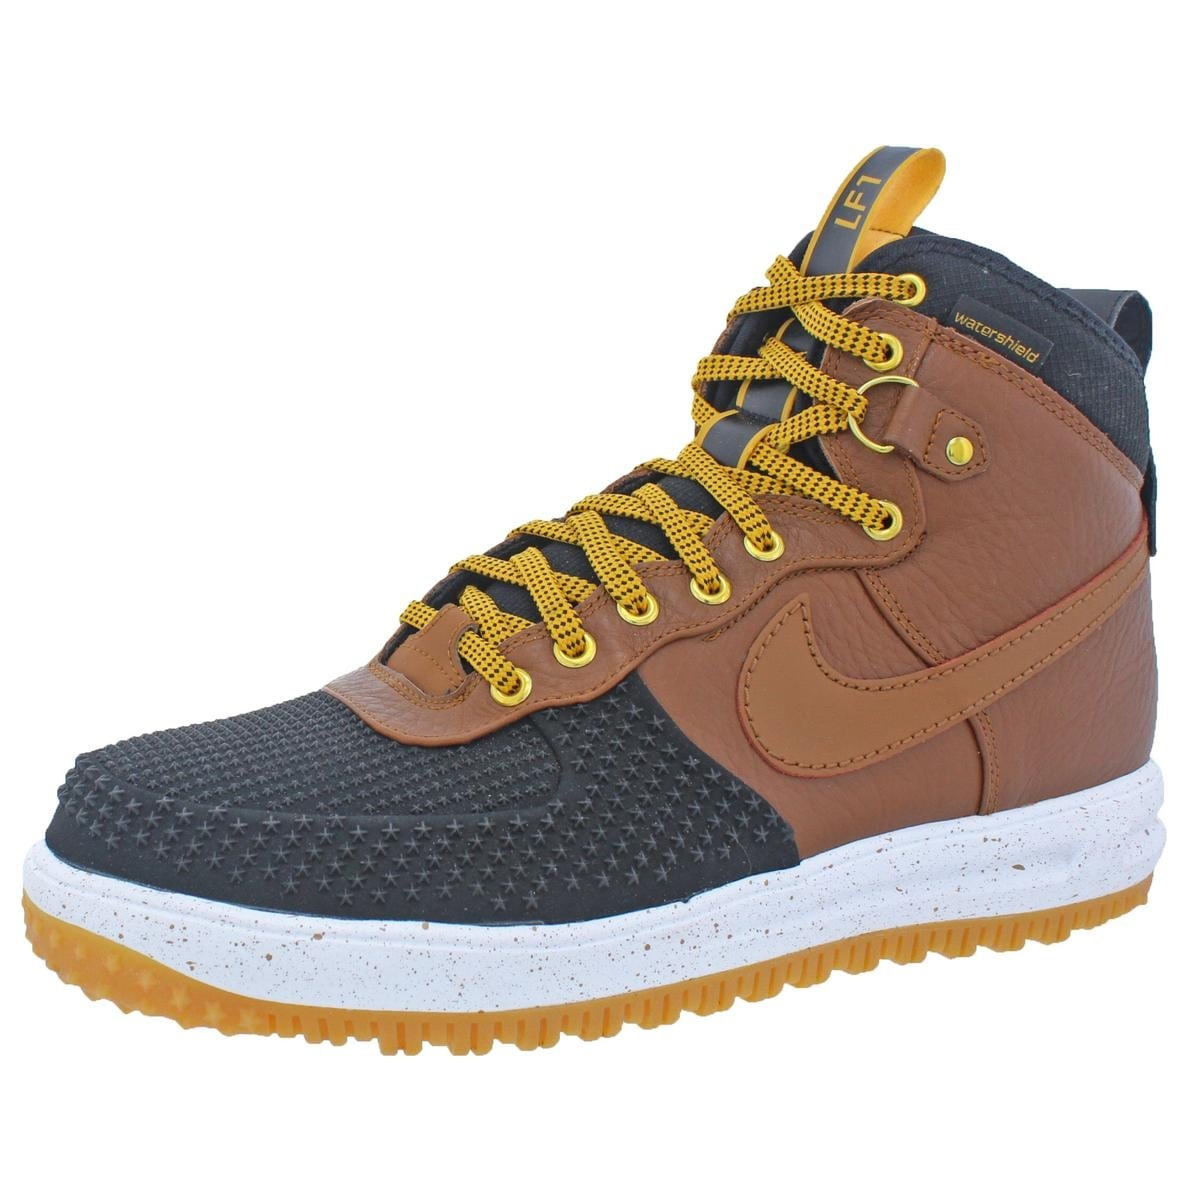 d231eb849c219 Shop Nike Mens Lunar Force 1 Duckboot Fashion Sneakers Watershield High-Top  - Free Shipping Today - Overstock - 21846705